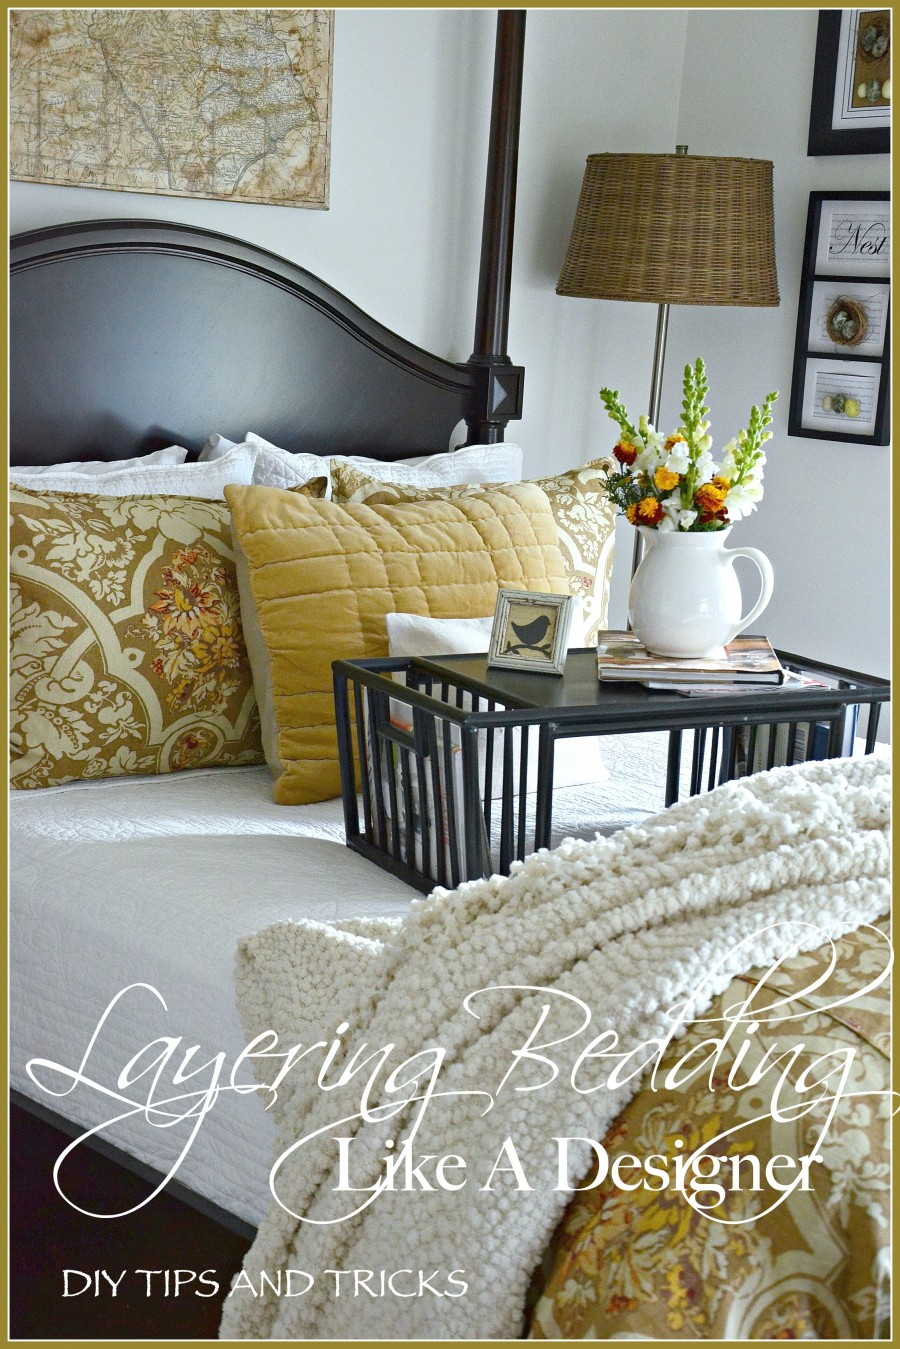 Layering Bedding Like A Designer Easy To Do Tips For Making Fabulously Stylish Bed